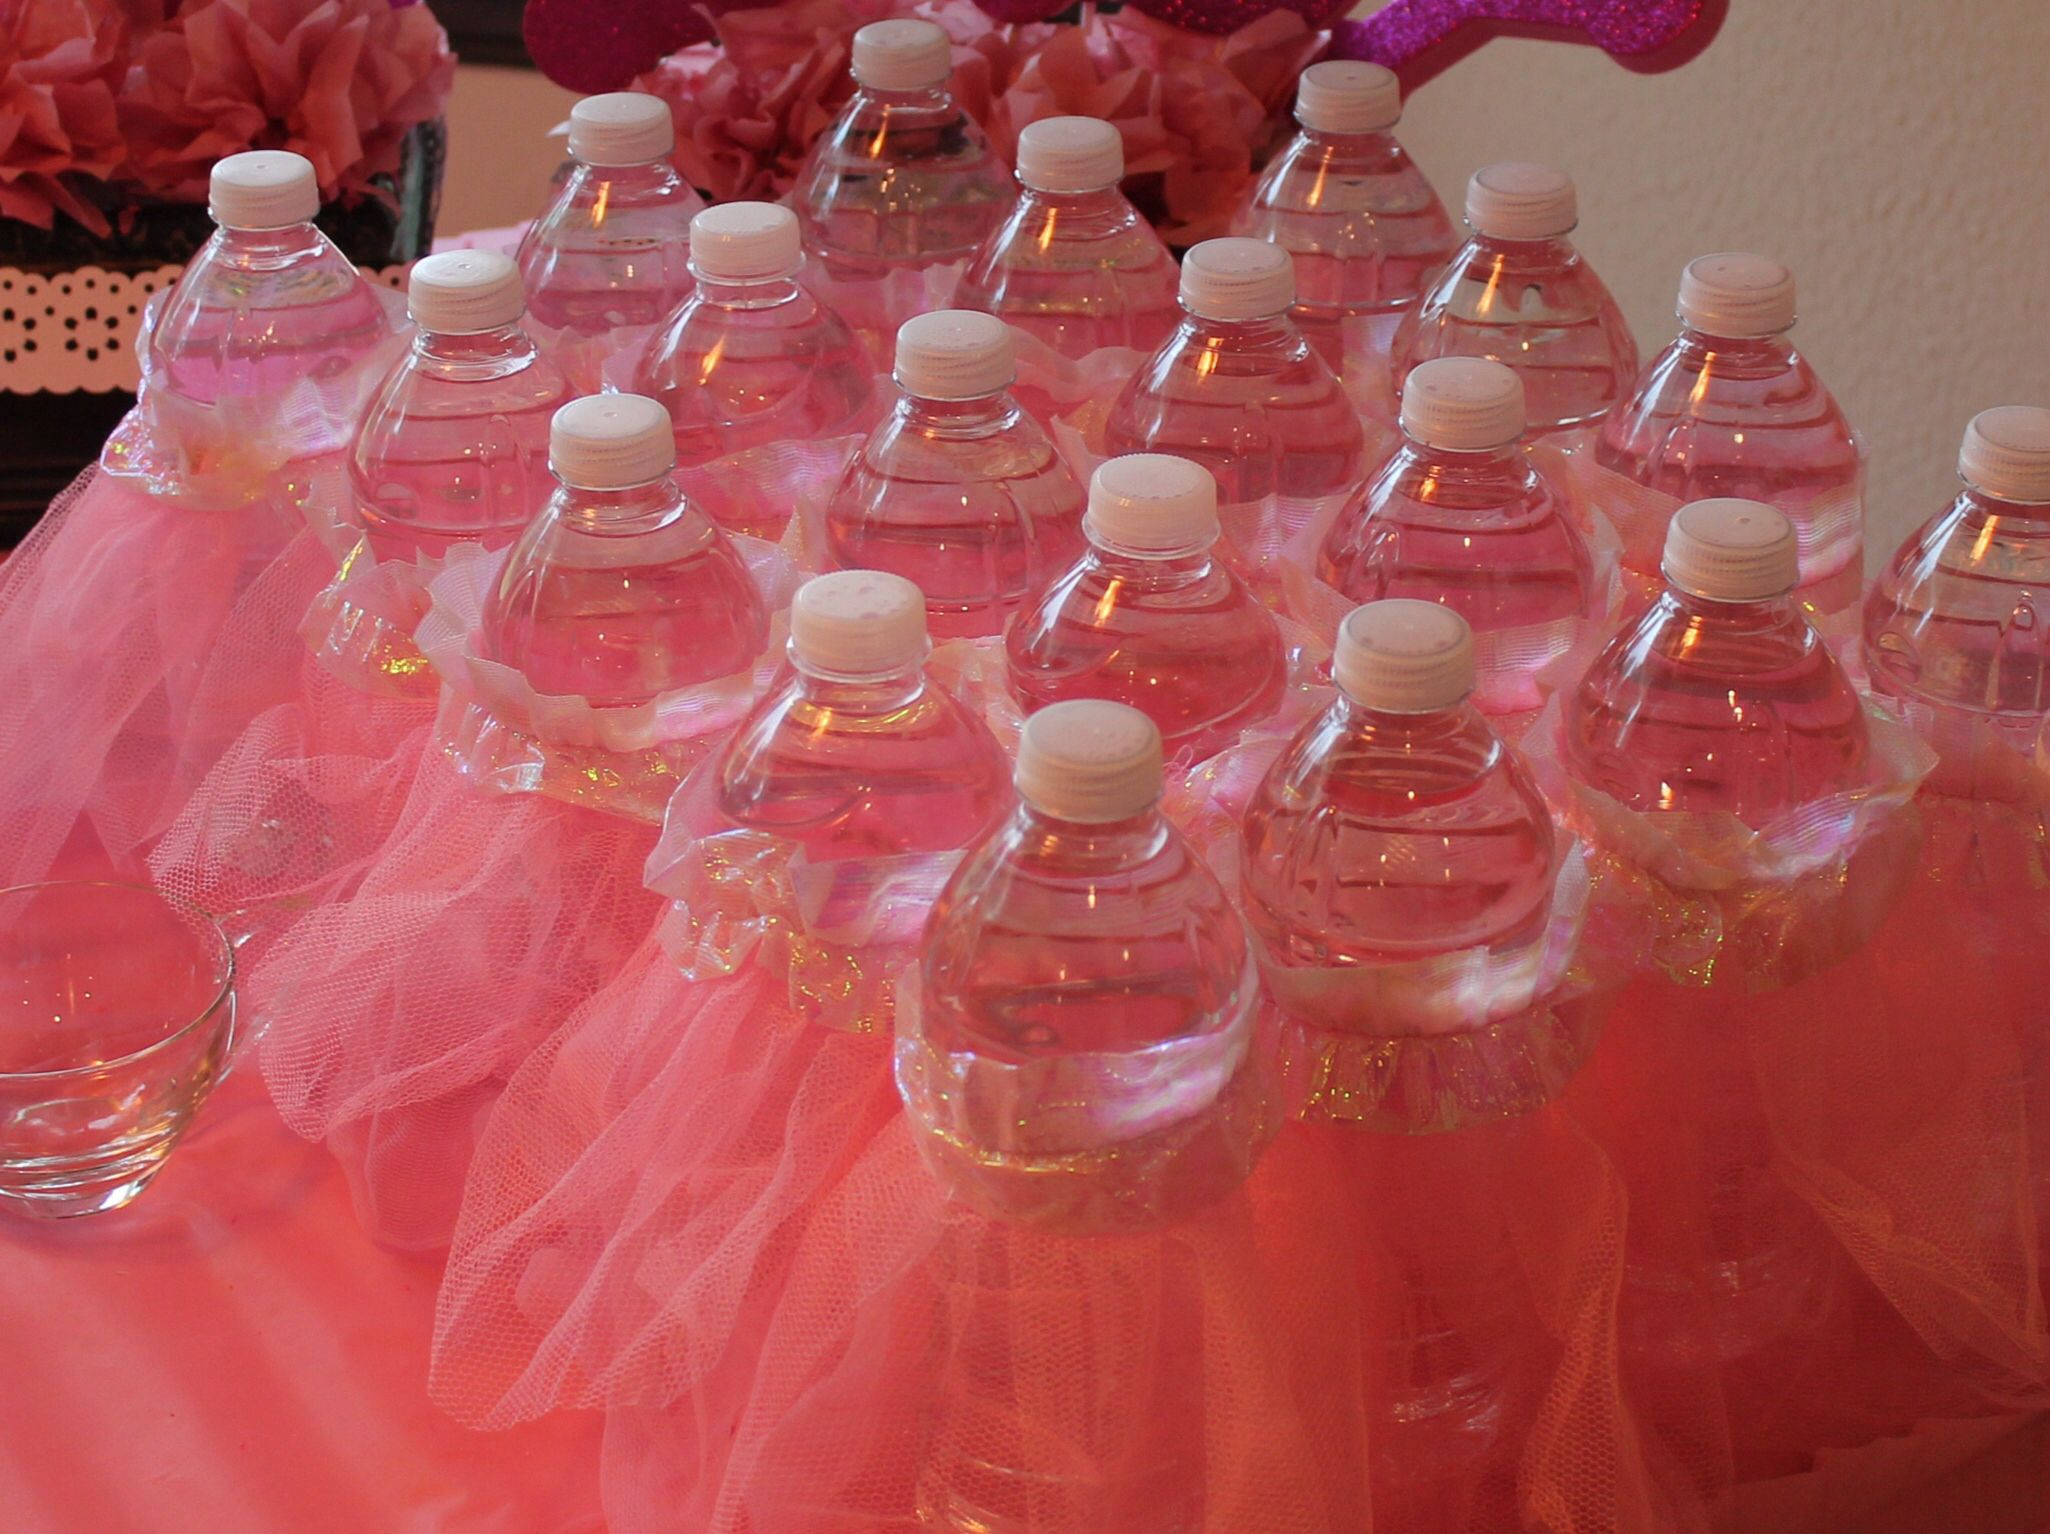 Pin by ranae spivey on carla meggie baby ideas pinterest for Baby bottle decoration ideas